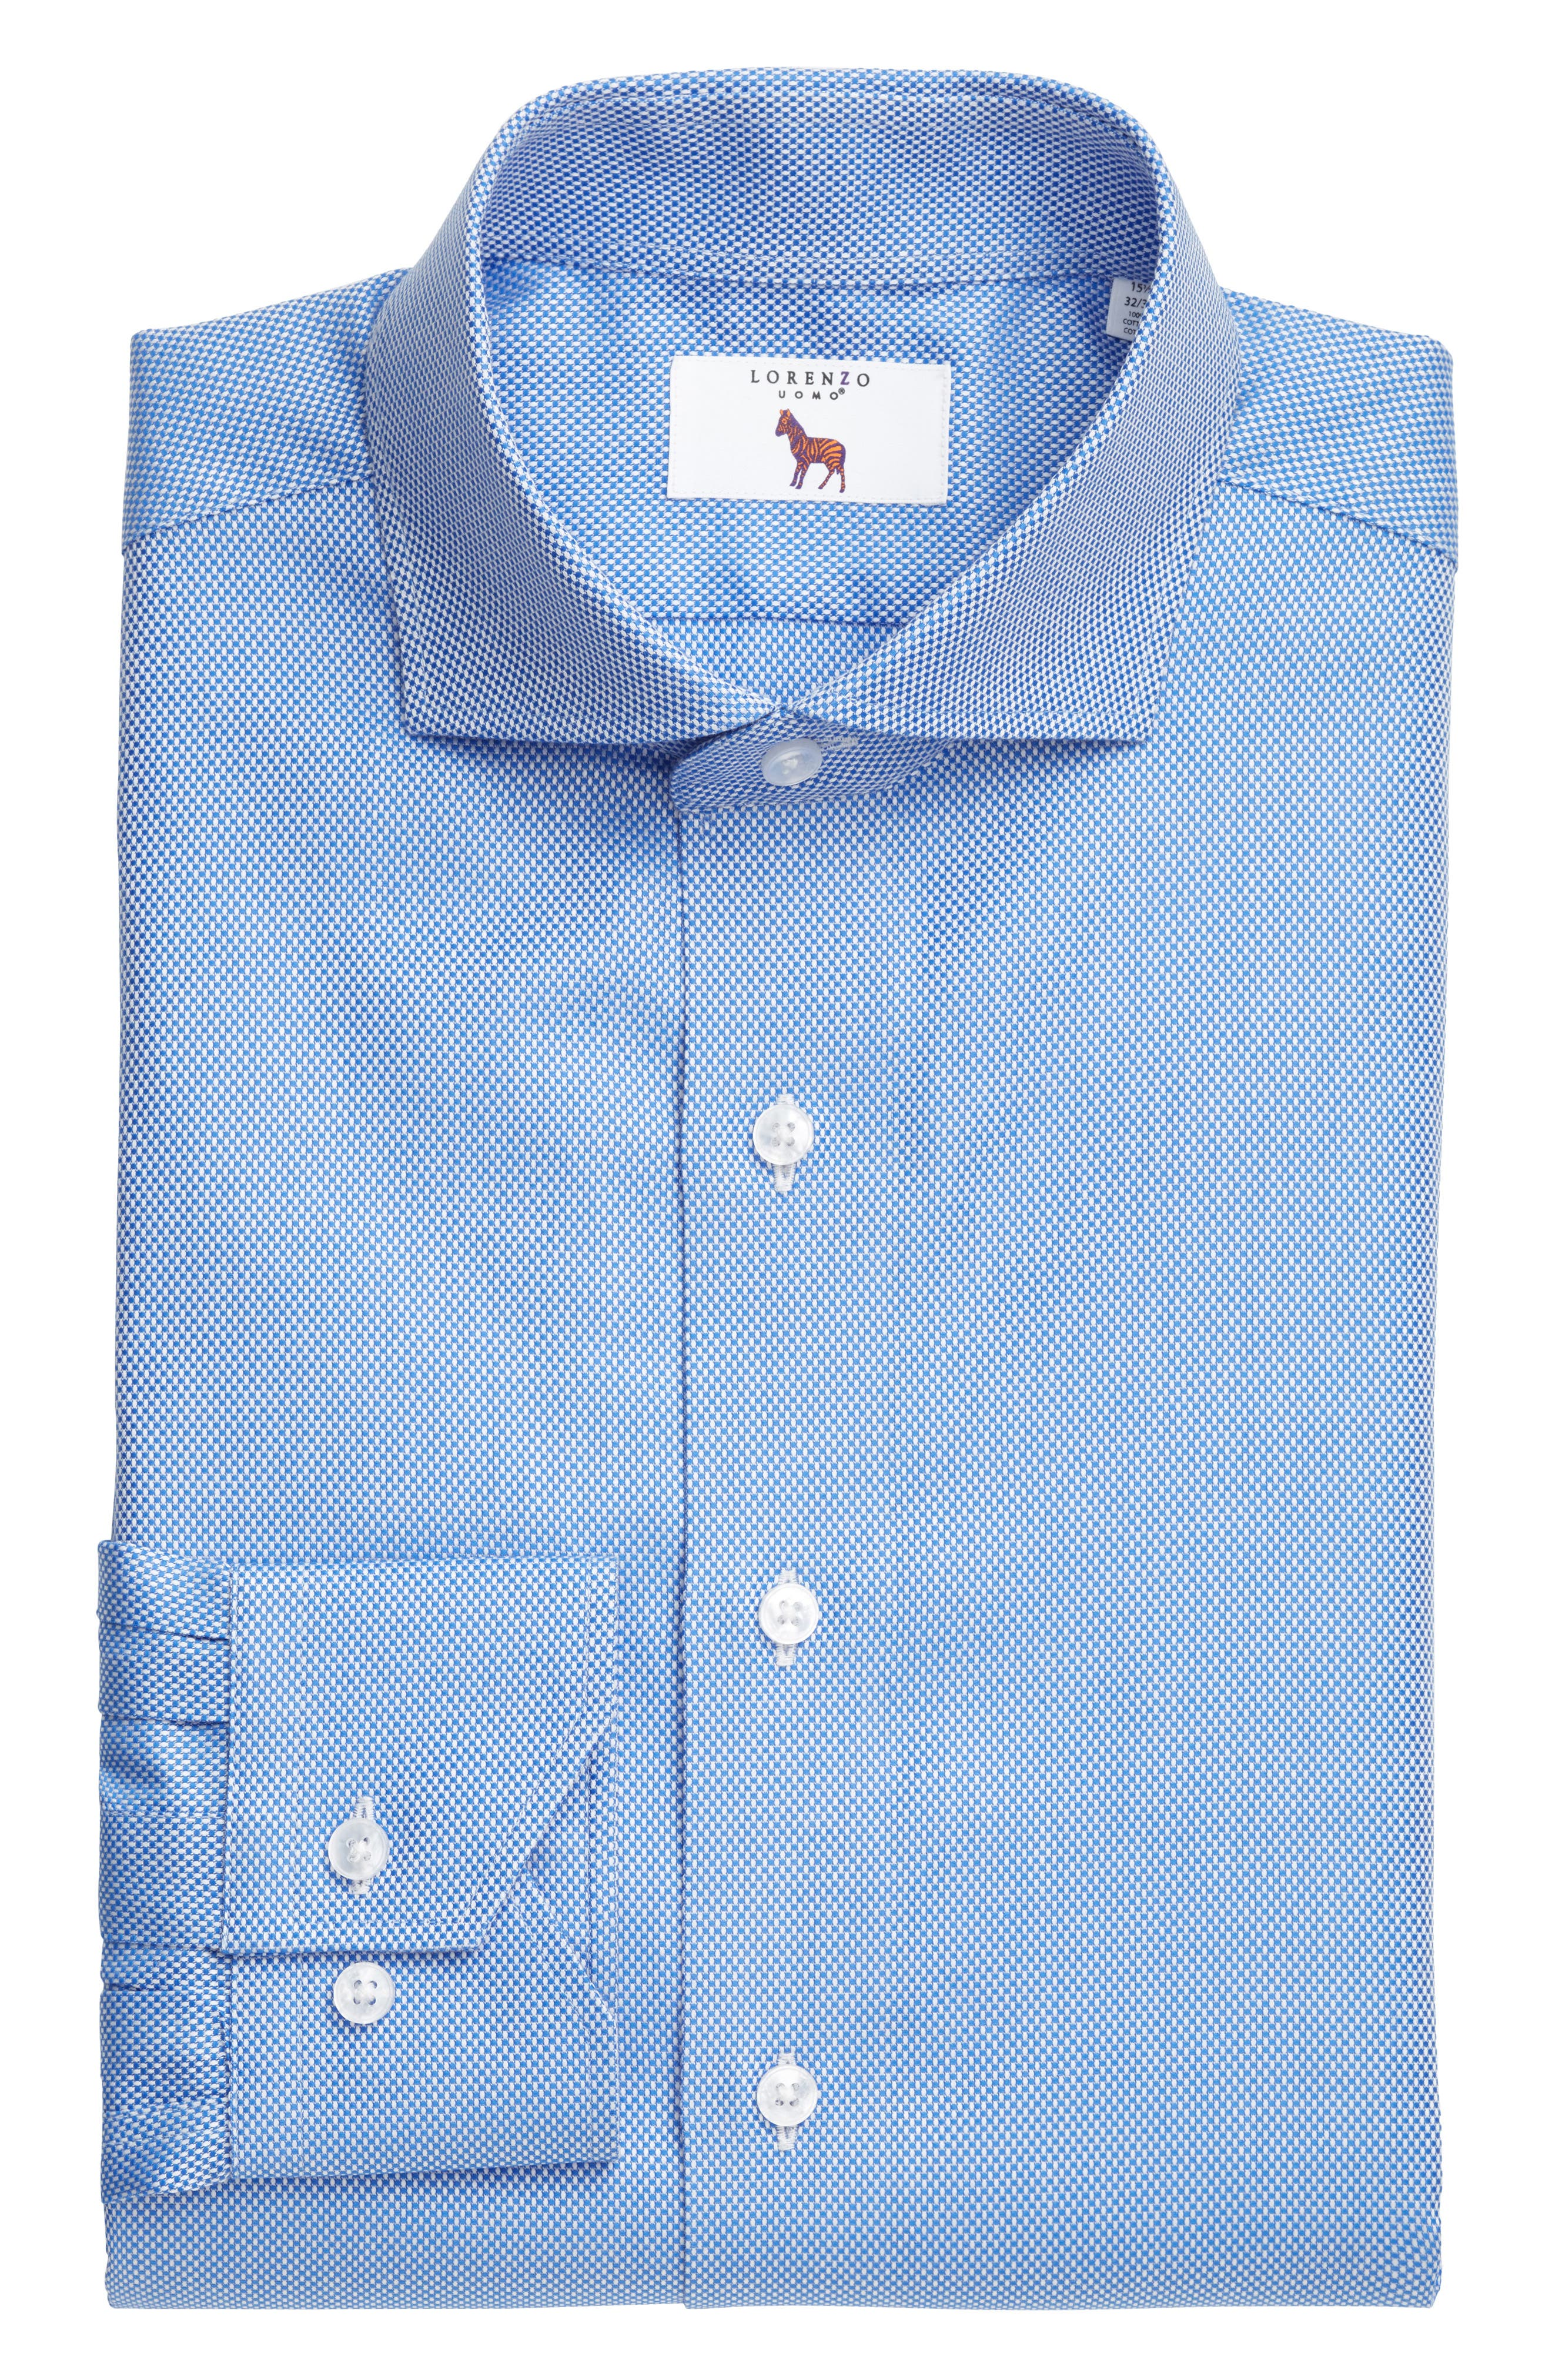 Alternate Image 4  - Lorenzo Uomo Trim Fit Texture Dress Shirt